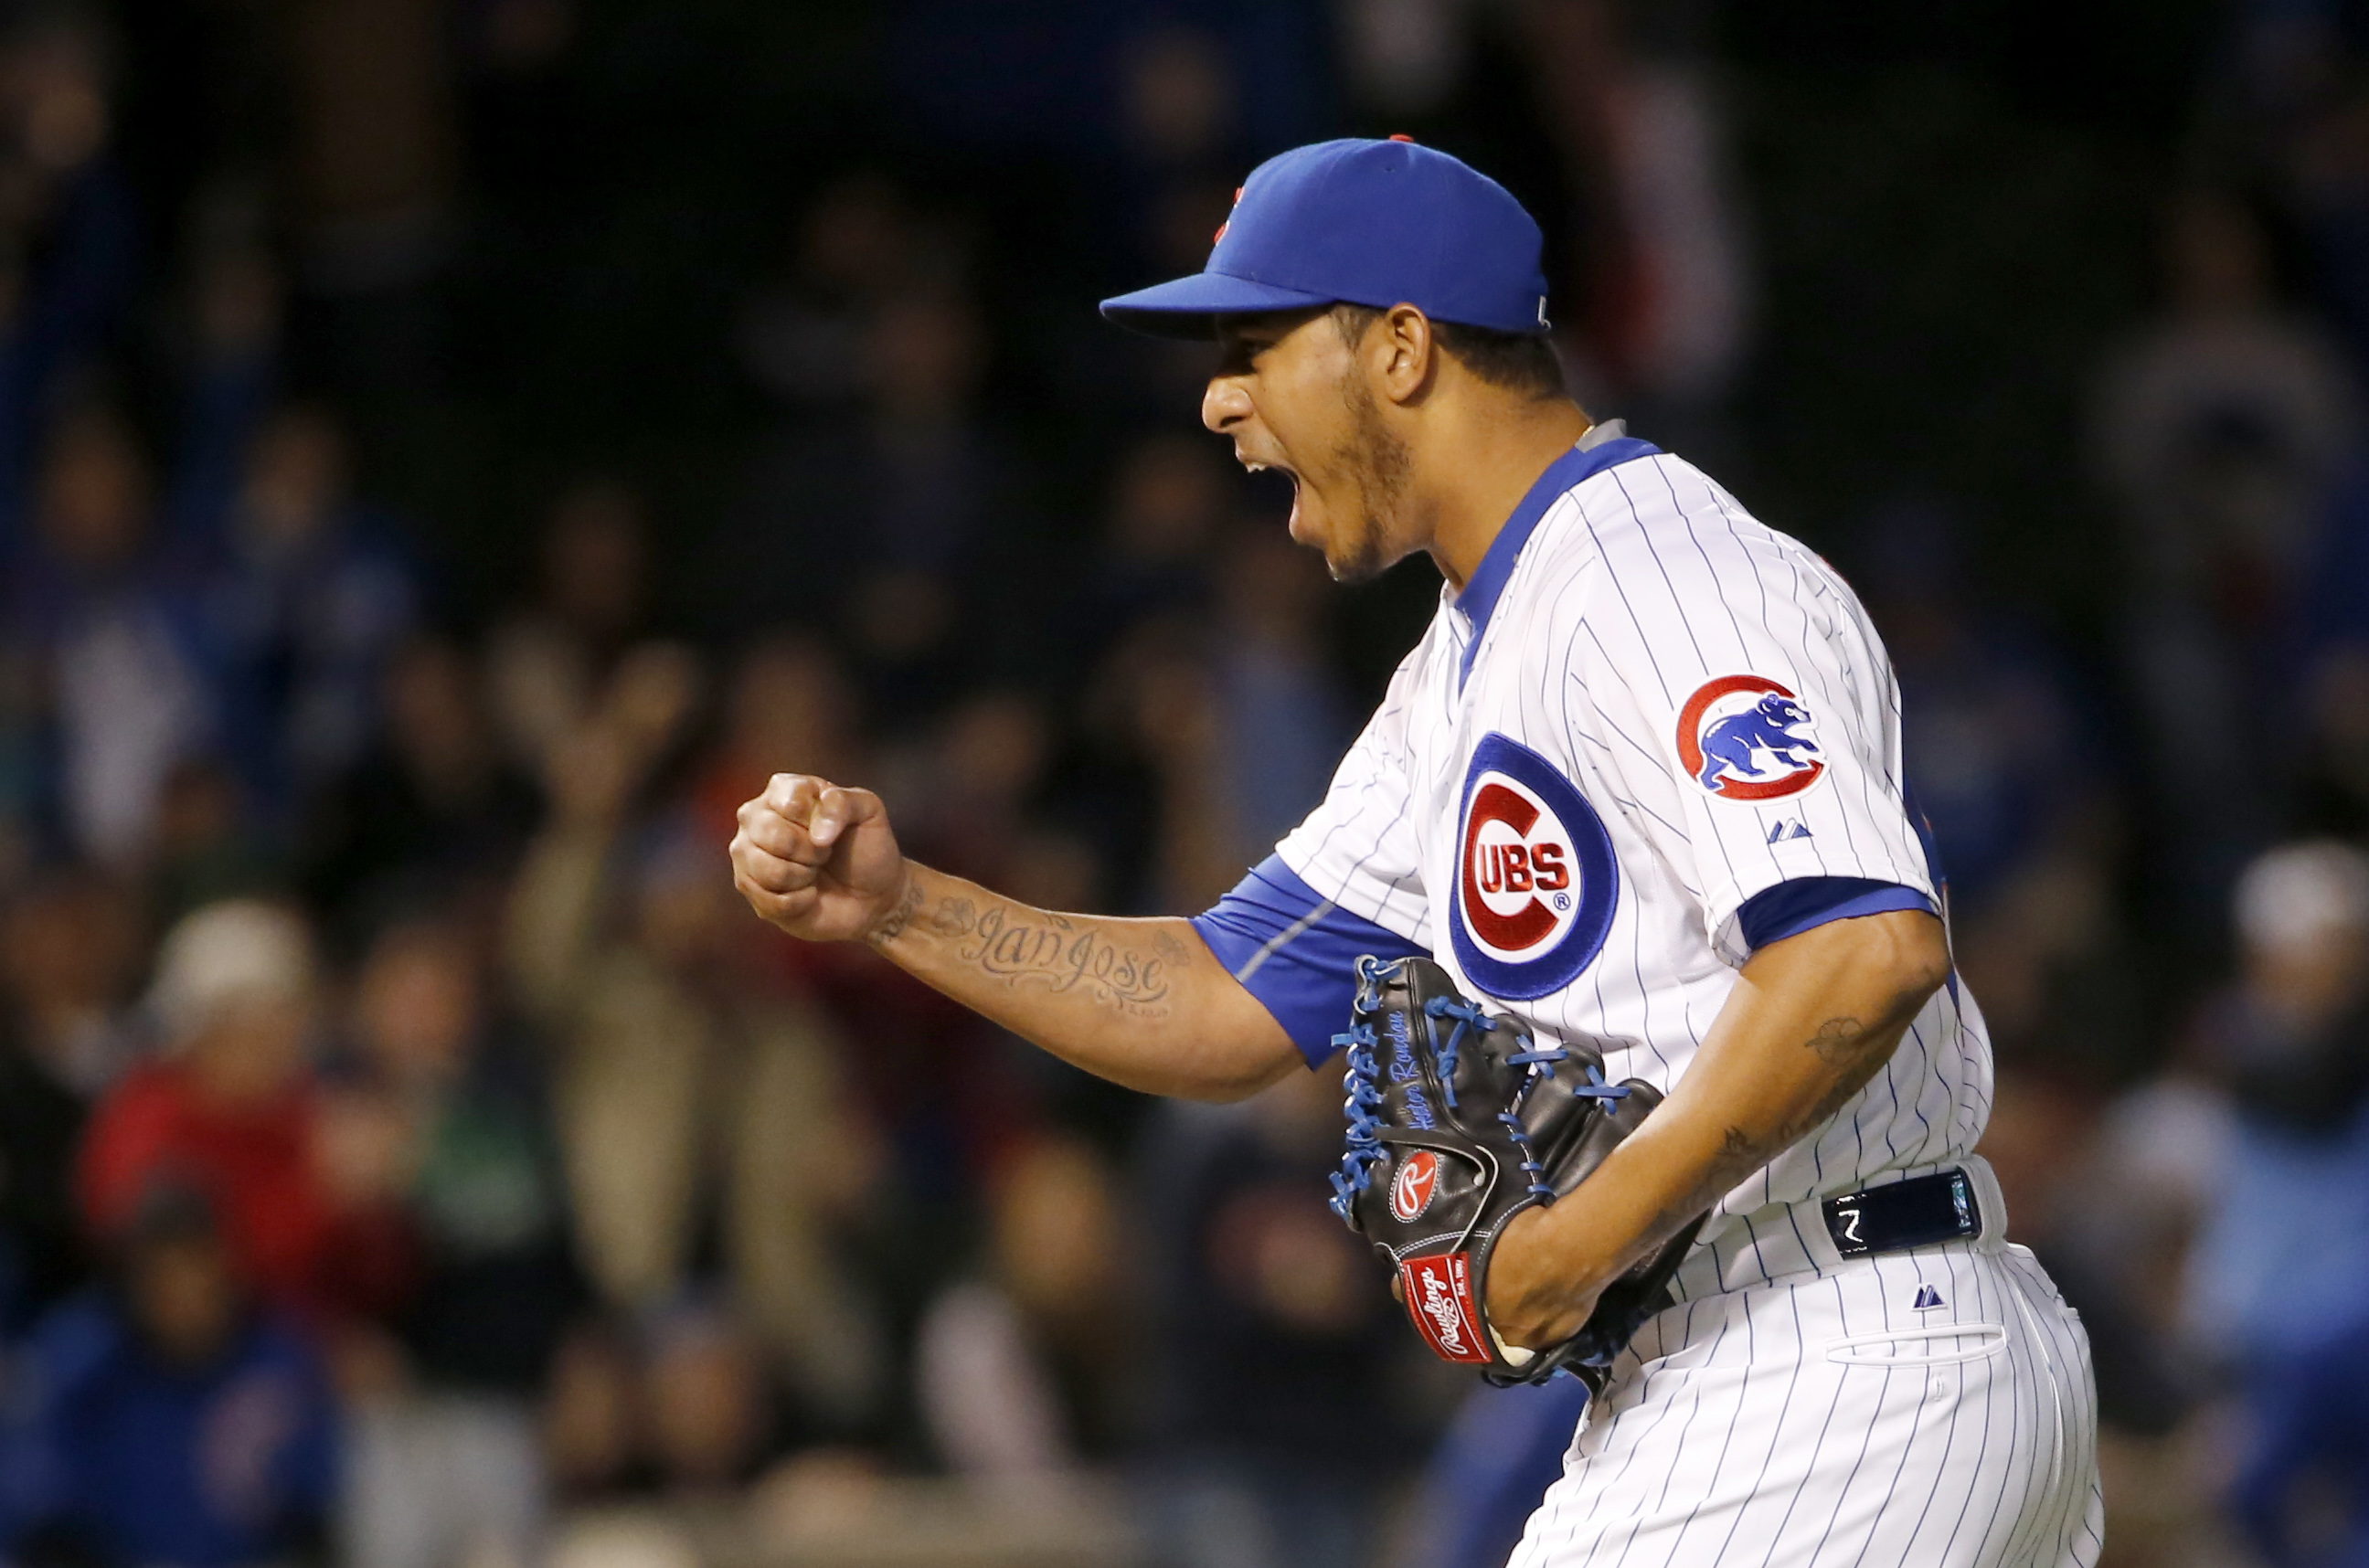 Chicago Cubs relief pitcher Hector Rondon celebrates the Cubs' 4-3 win over then New York Mets after a baseball game Monday, May 11, 2015, in Chicago. (AP Photo/Charles Rex Arbogast)